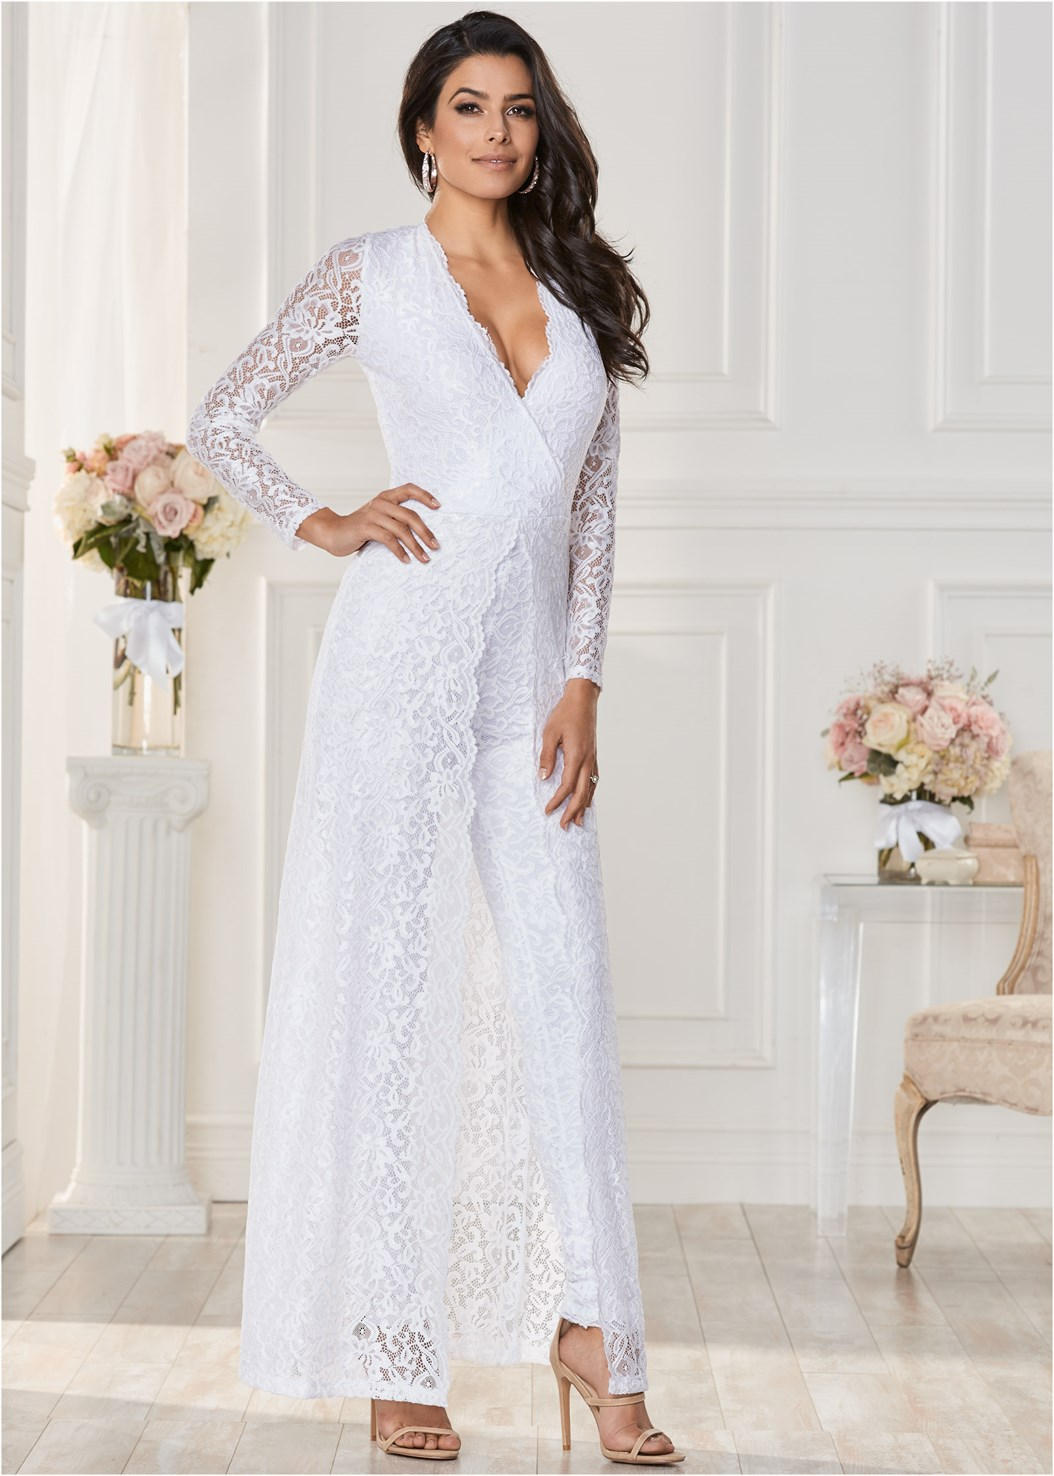 Plunging Lace Jumpsuit,Natural Beauty Bralette,High Heel Strappy Sandals